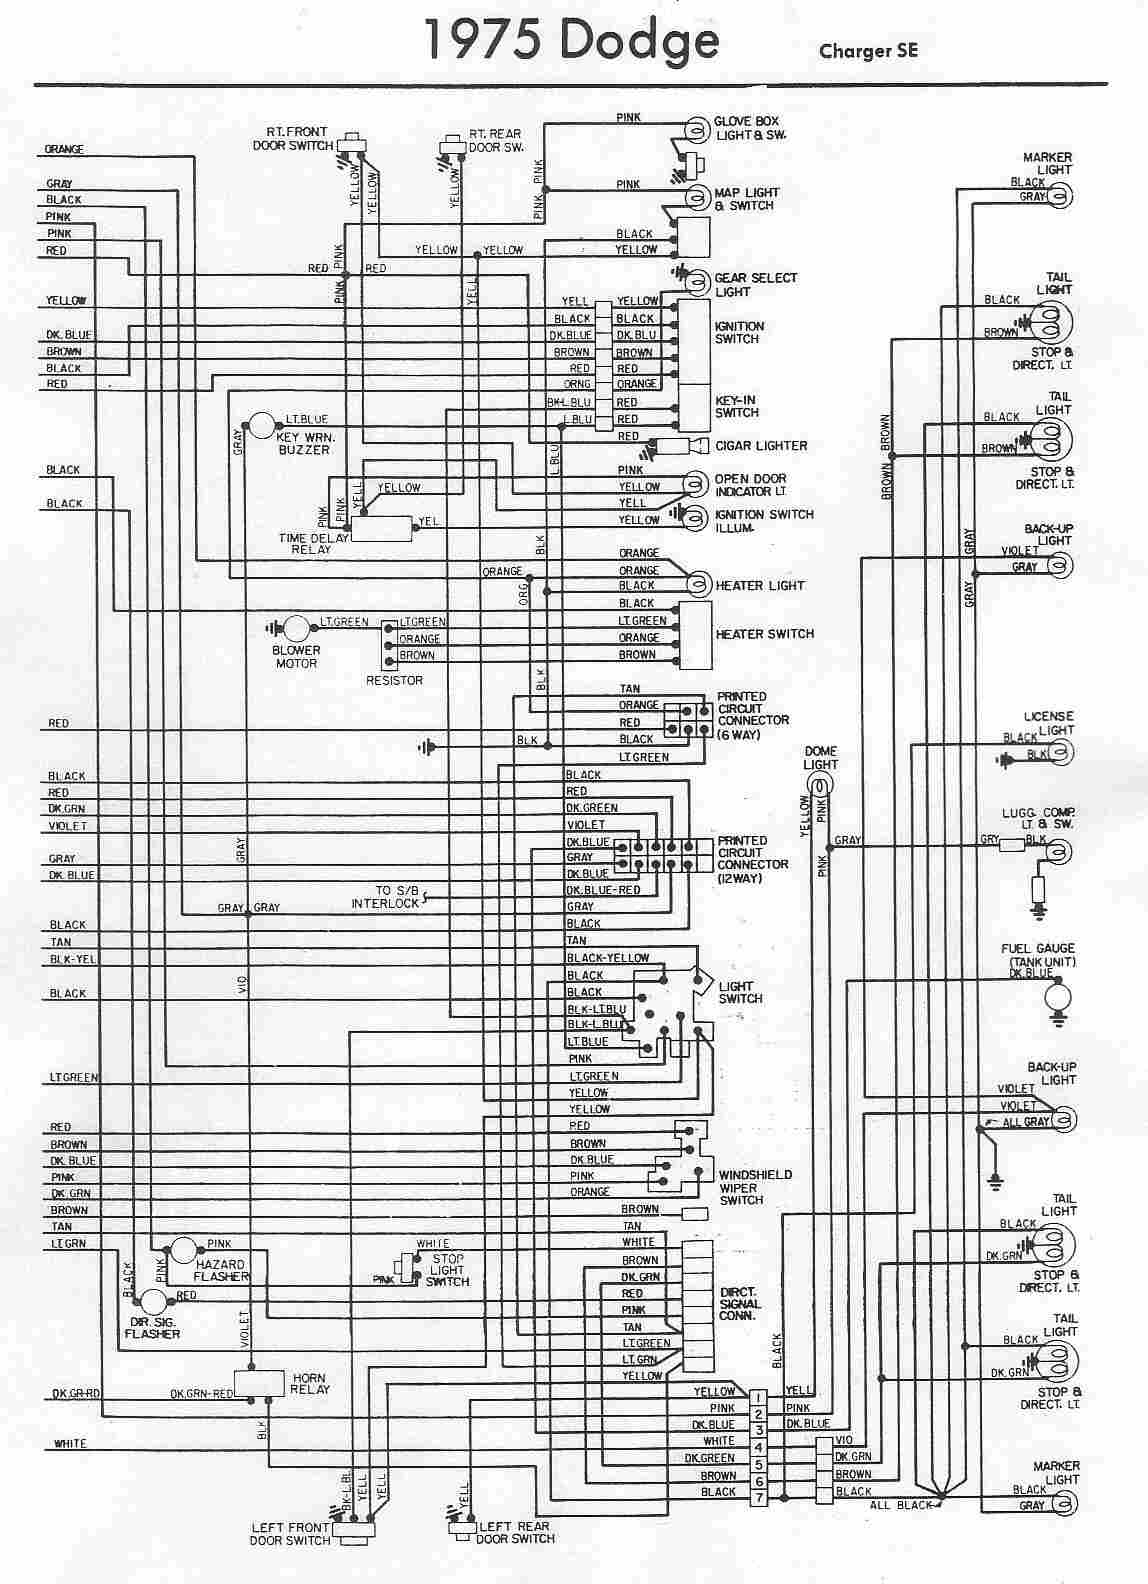 dodge truck wiring diagram detailed schematic diagrams rh 4rmotorsports com 1969 dodge d100 wiring diagram dodge truck wiring diagrams